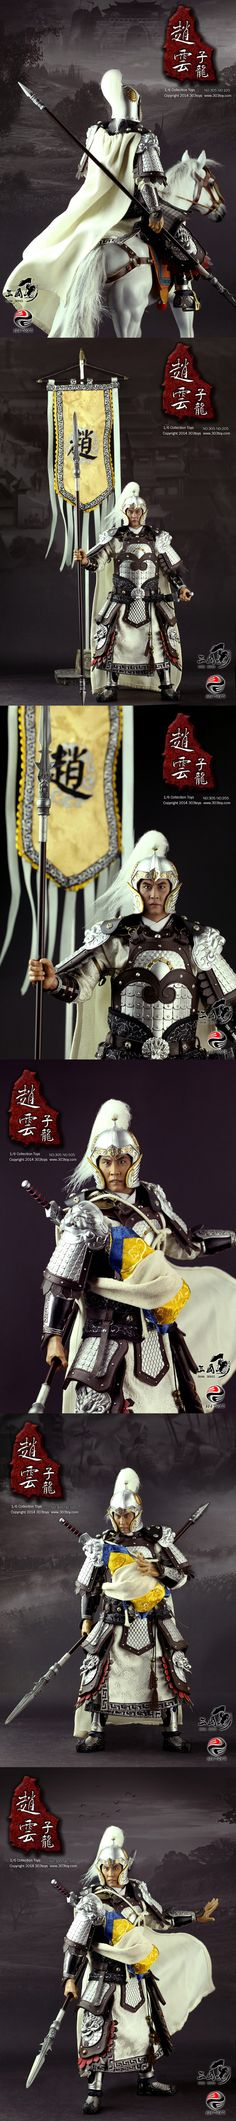 [303TOYS 1/6 China Series - Zhao Yun(Sub Dragon) Set]